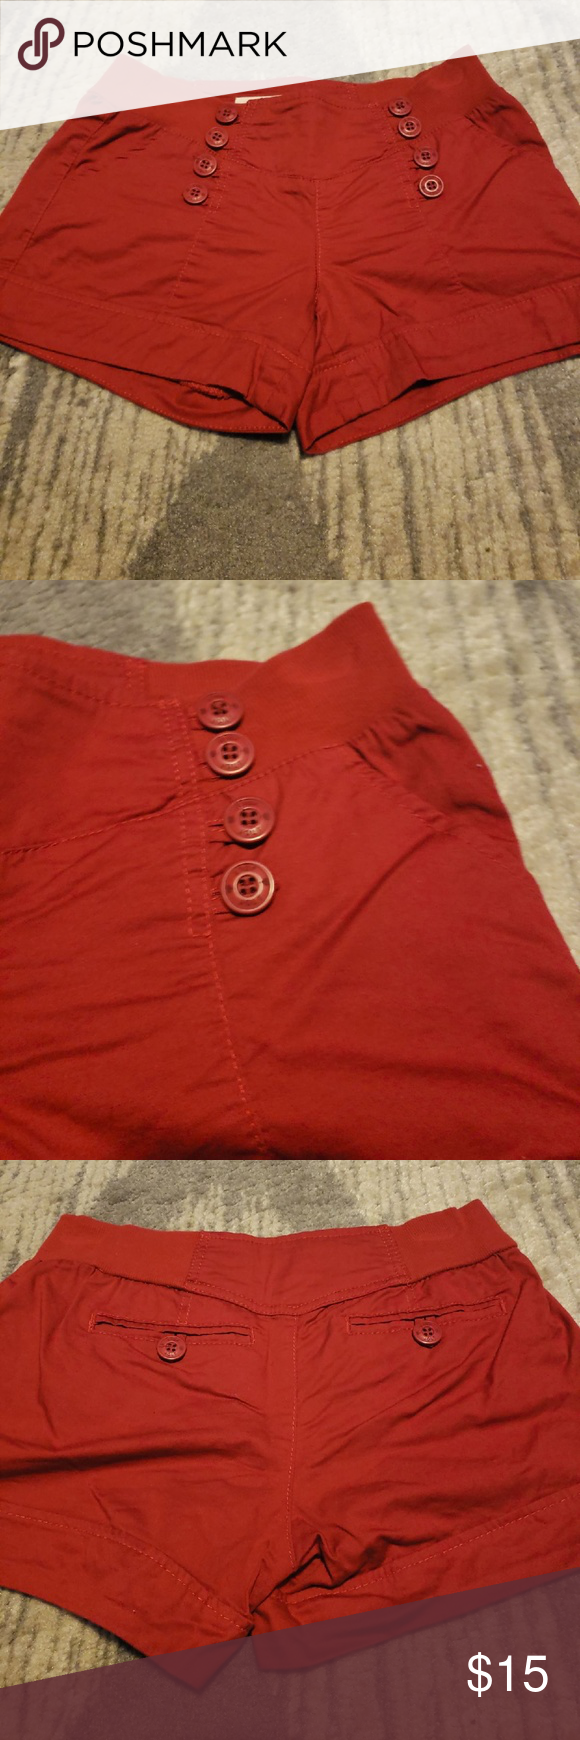 Red Sailor Shorts Red pull on sailor shorts.  Size 5.  These pull on the buttons are just decoration...